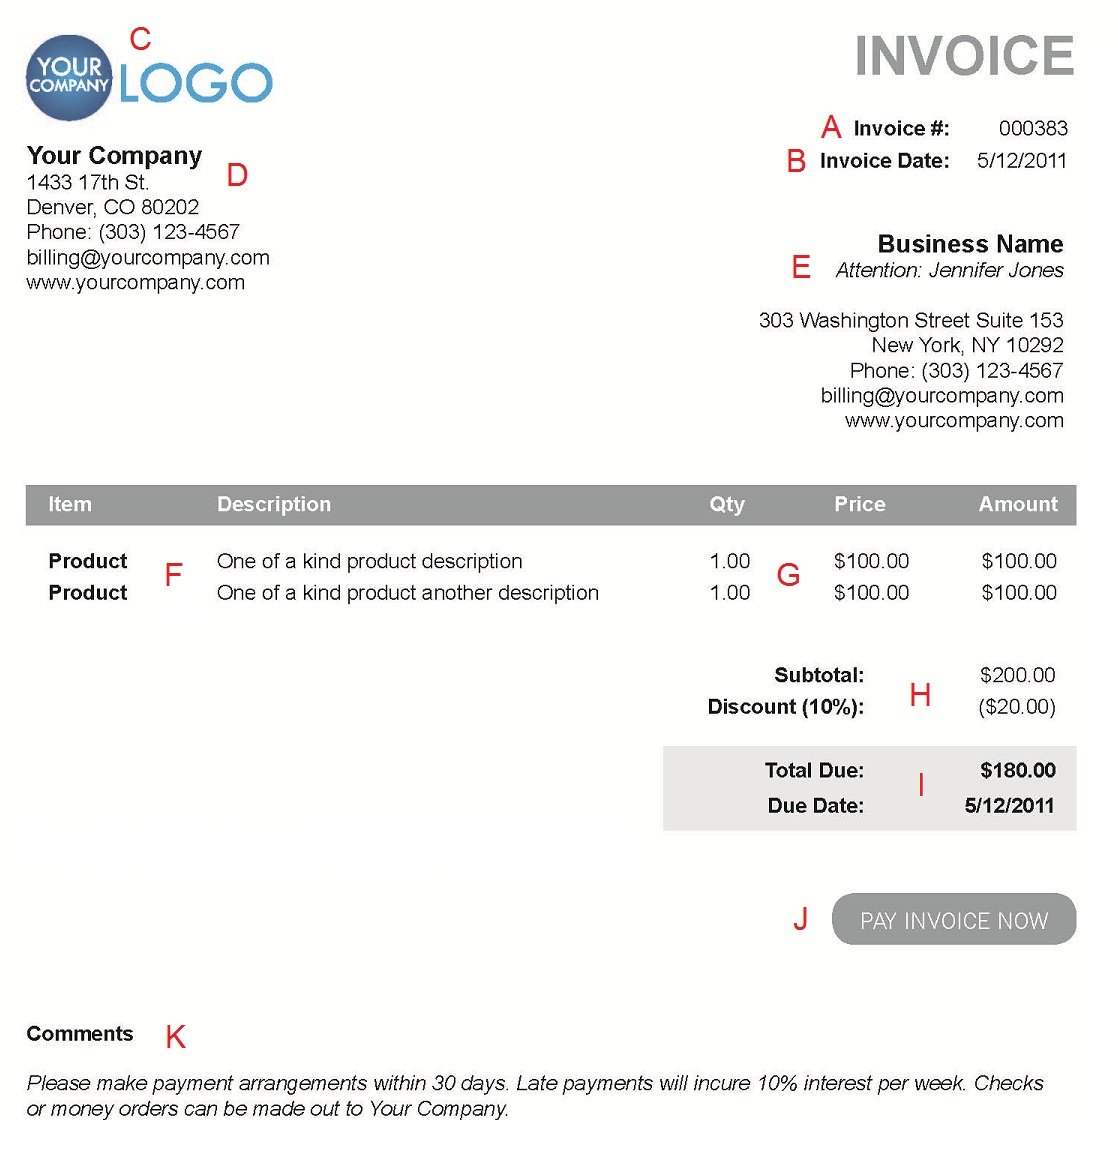 Aaaaeroincus  Personable The  Different Sections Of An Electronic Payment Invoice With Handsome A  With Amazing Caricom Invoice Template Also Invoice Template Open Office Free In Addition Free Invoice Word Template And Simple Invoice Format In Word As Well As Performa Invoice Template Additionally Invoice Not Paid What Can I Do From Paysimplecom With Aaaaeroincus  Handsome The  Different Sections Of An Electronic Payment Invoice With Amazing A  And Personable Caricom Invoice Template Also Invoice Template Open Office Free In Addition Free Invoice Word Template From Paysimplecom